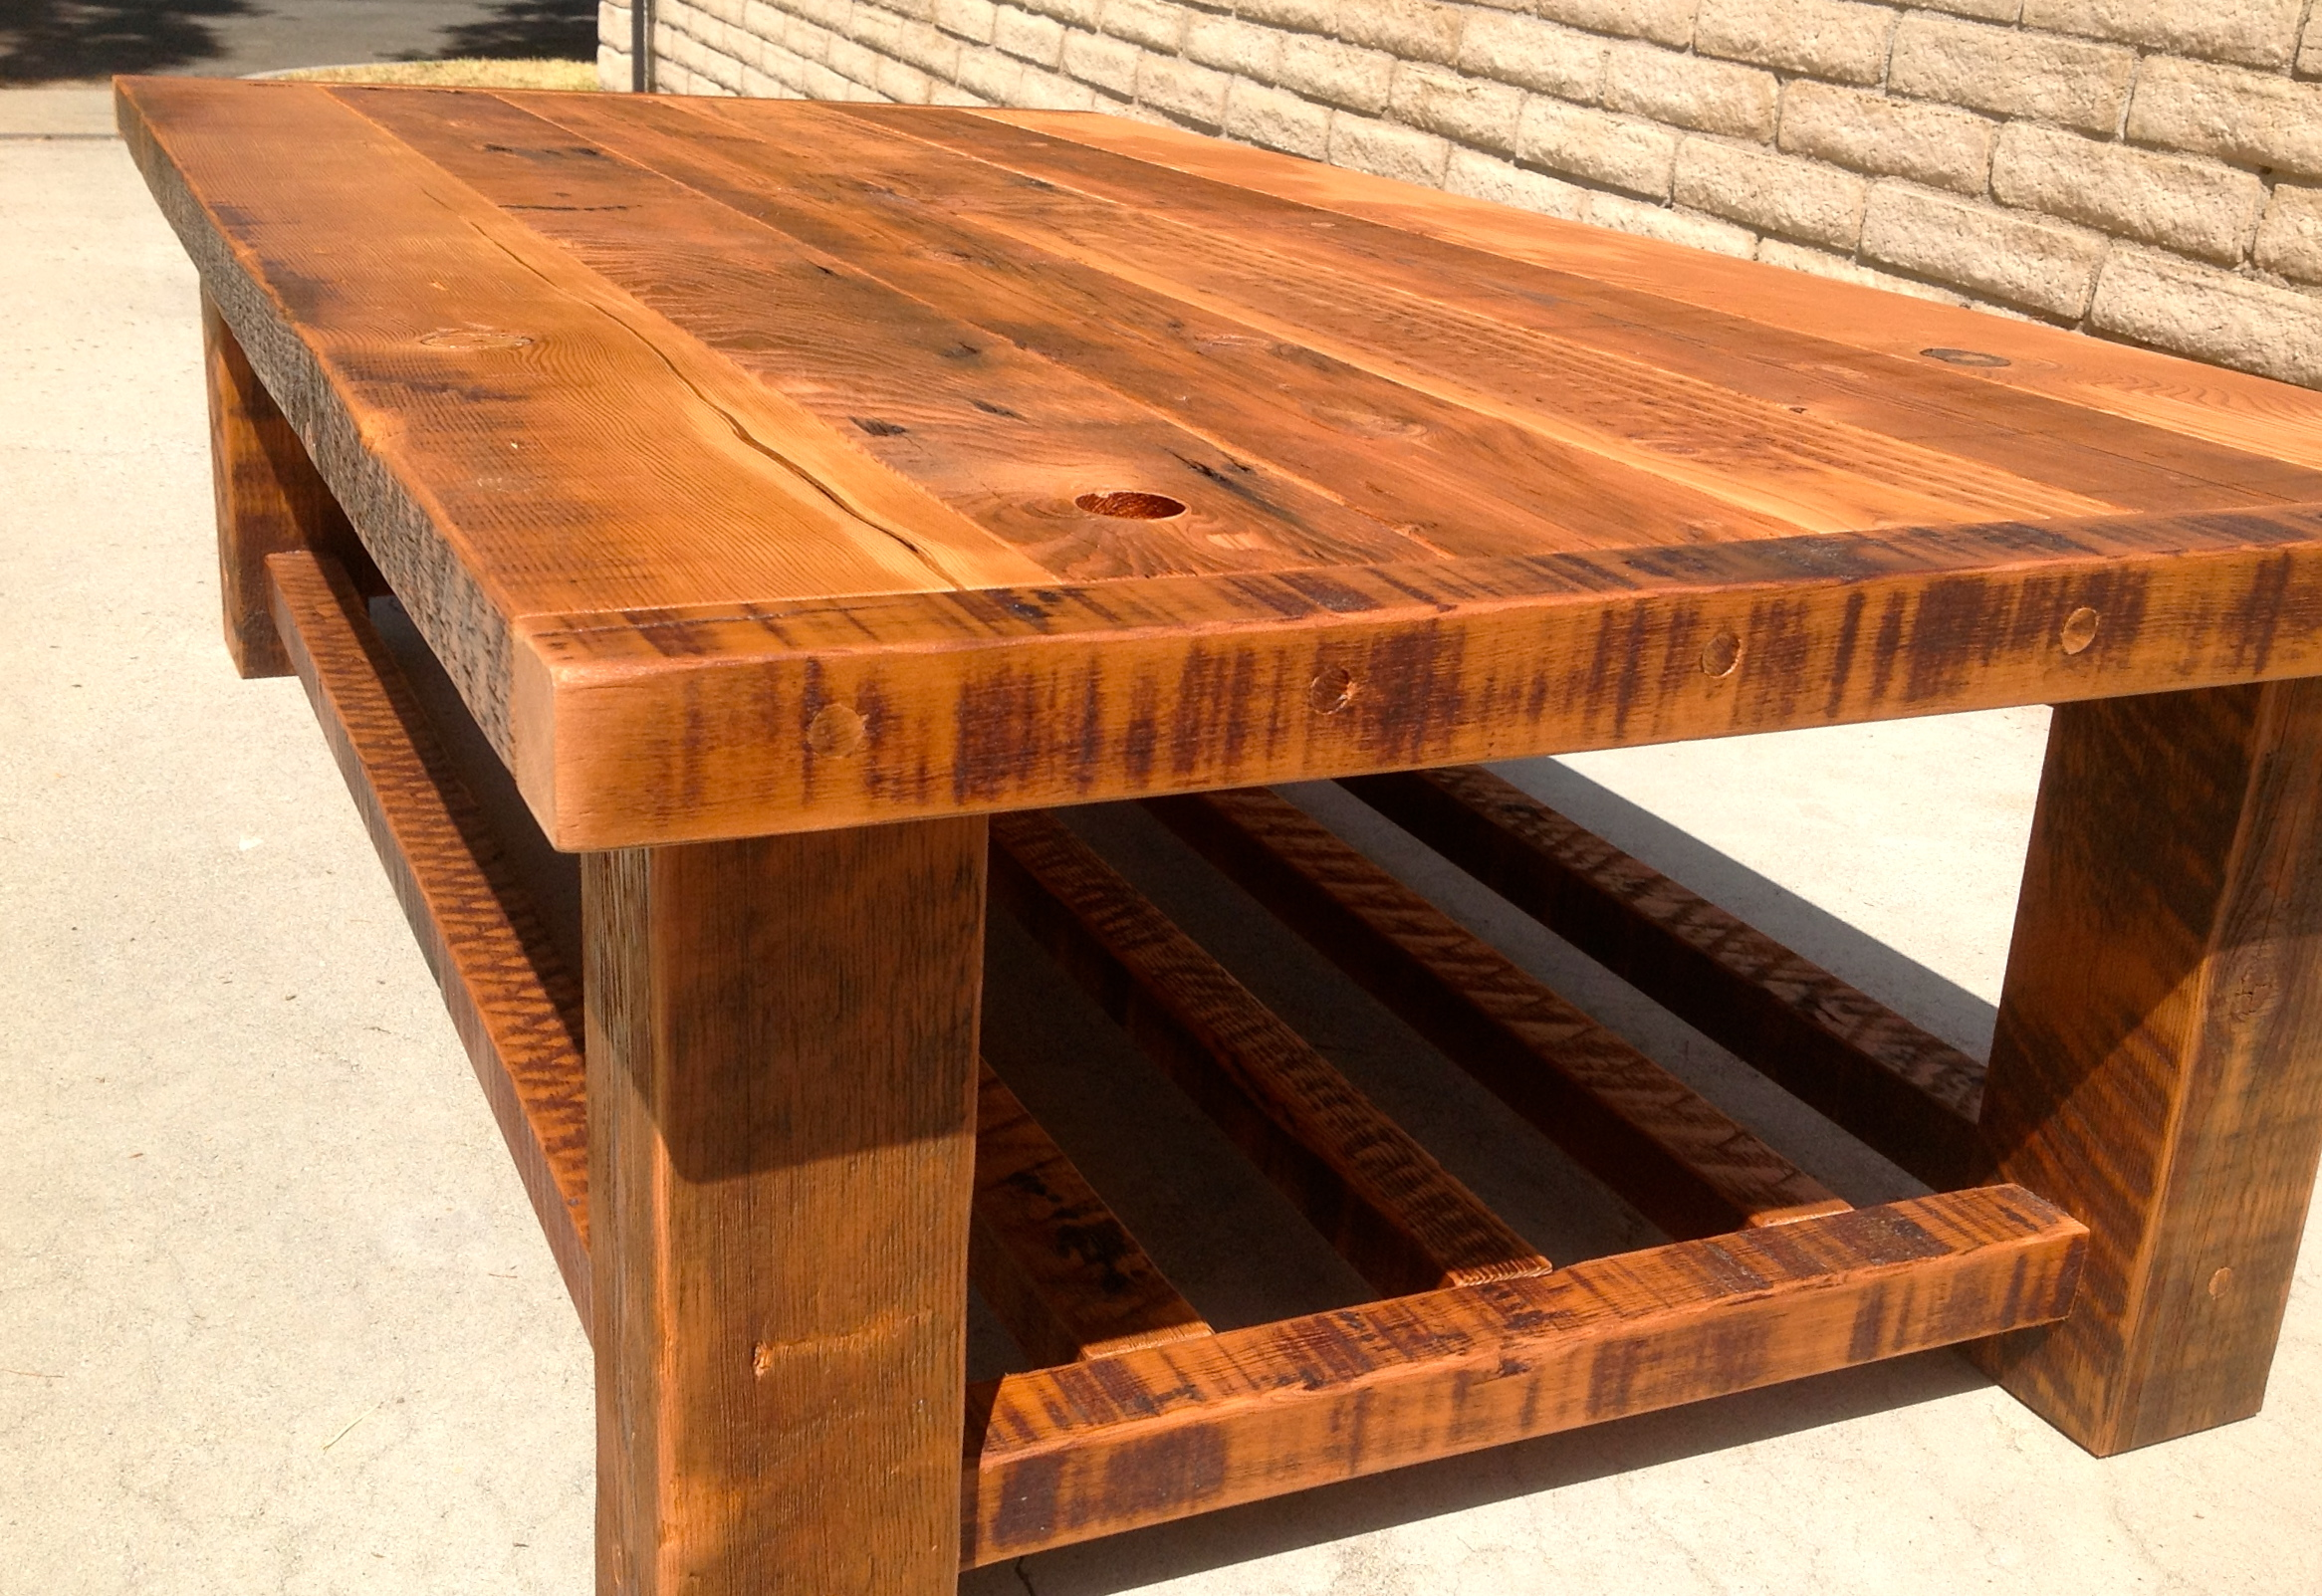 Tesco Coffee Table Oak Images Elephant Coffee Table Glass  : photo copy 4 from zenlaser.co size 2332 x 1603 jpeg 1525kB